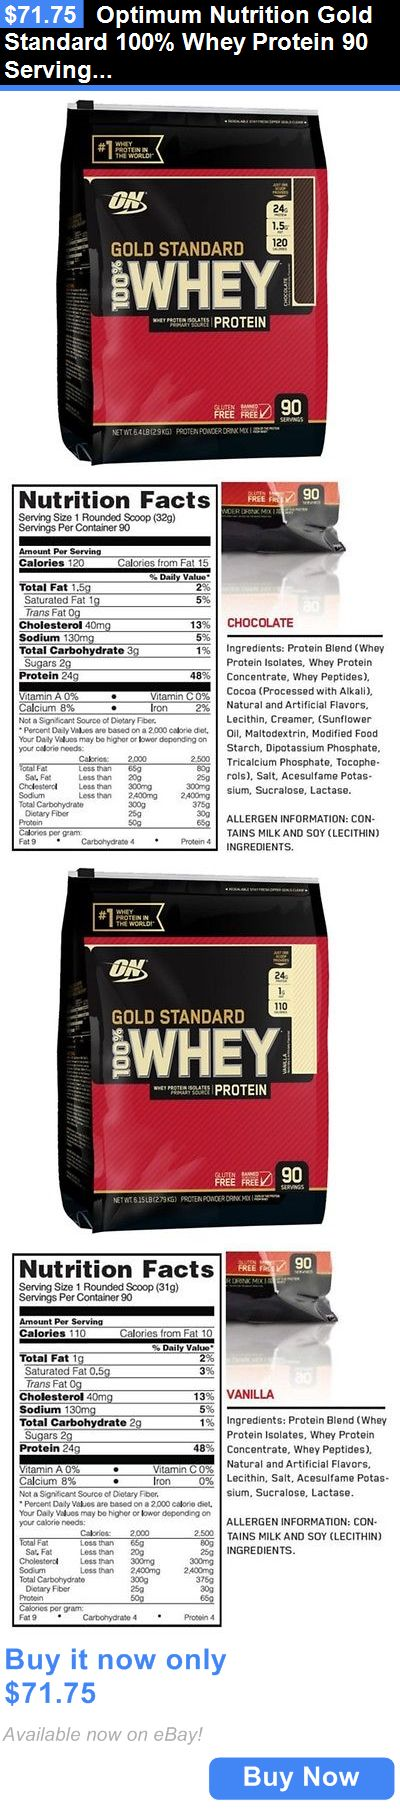 Health And Fitness: Optimum Nutrition Gold Standard 100% Whey Protein 90 Servings 6Lbs Free Shipping BUY IT NOW ONLY: $71.75